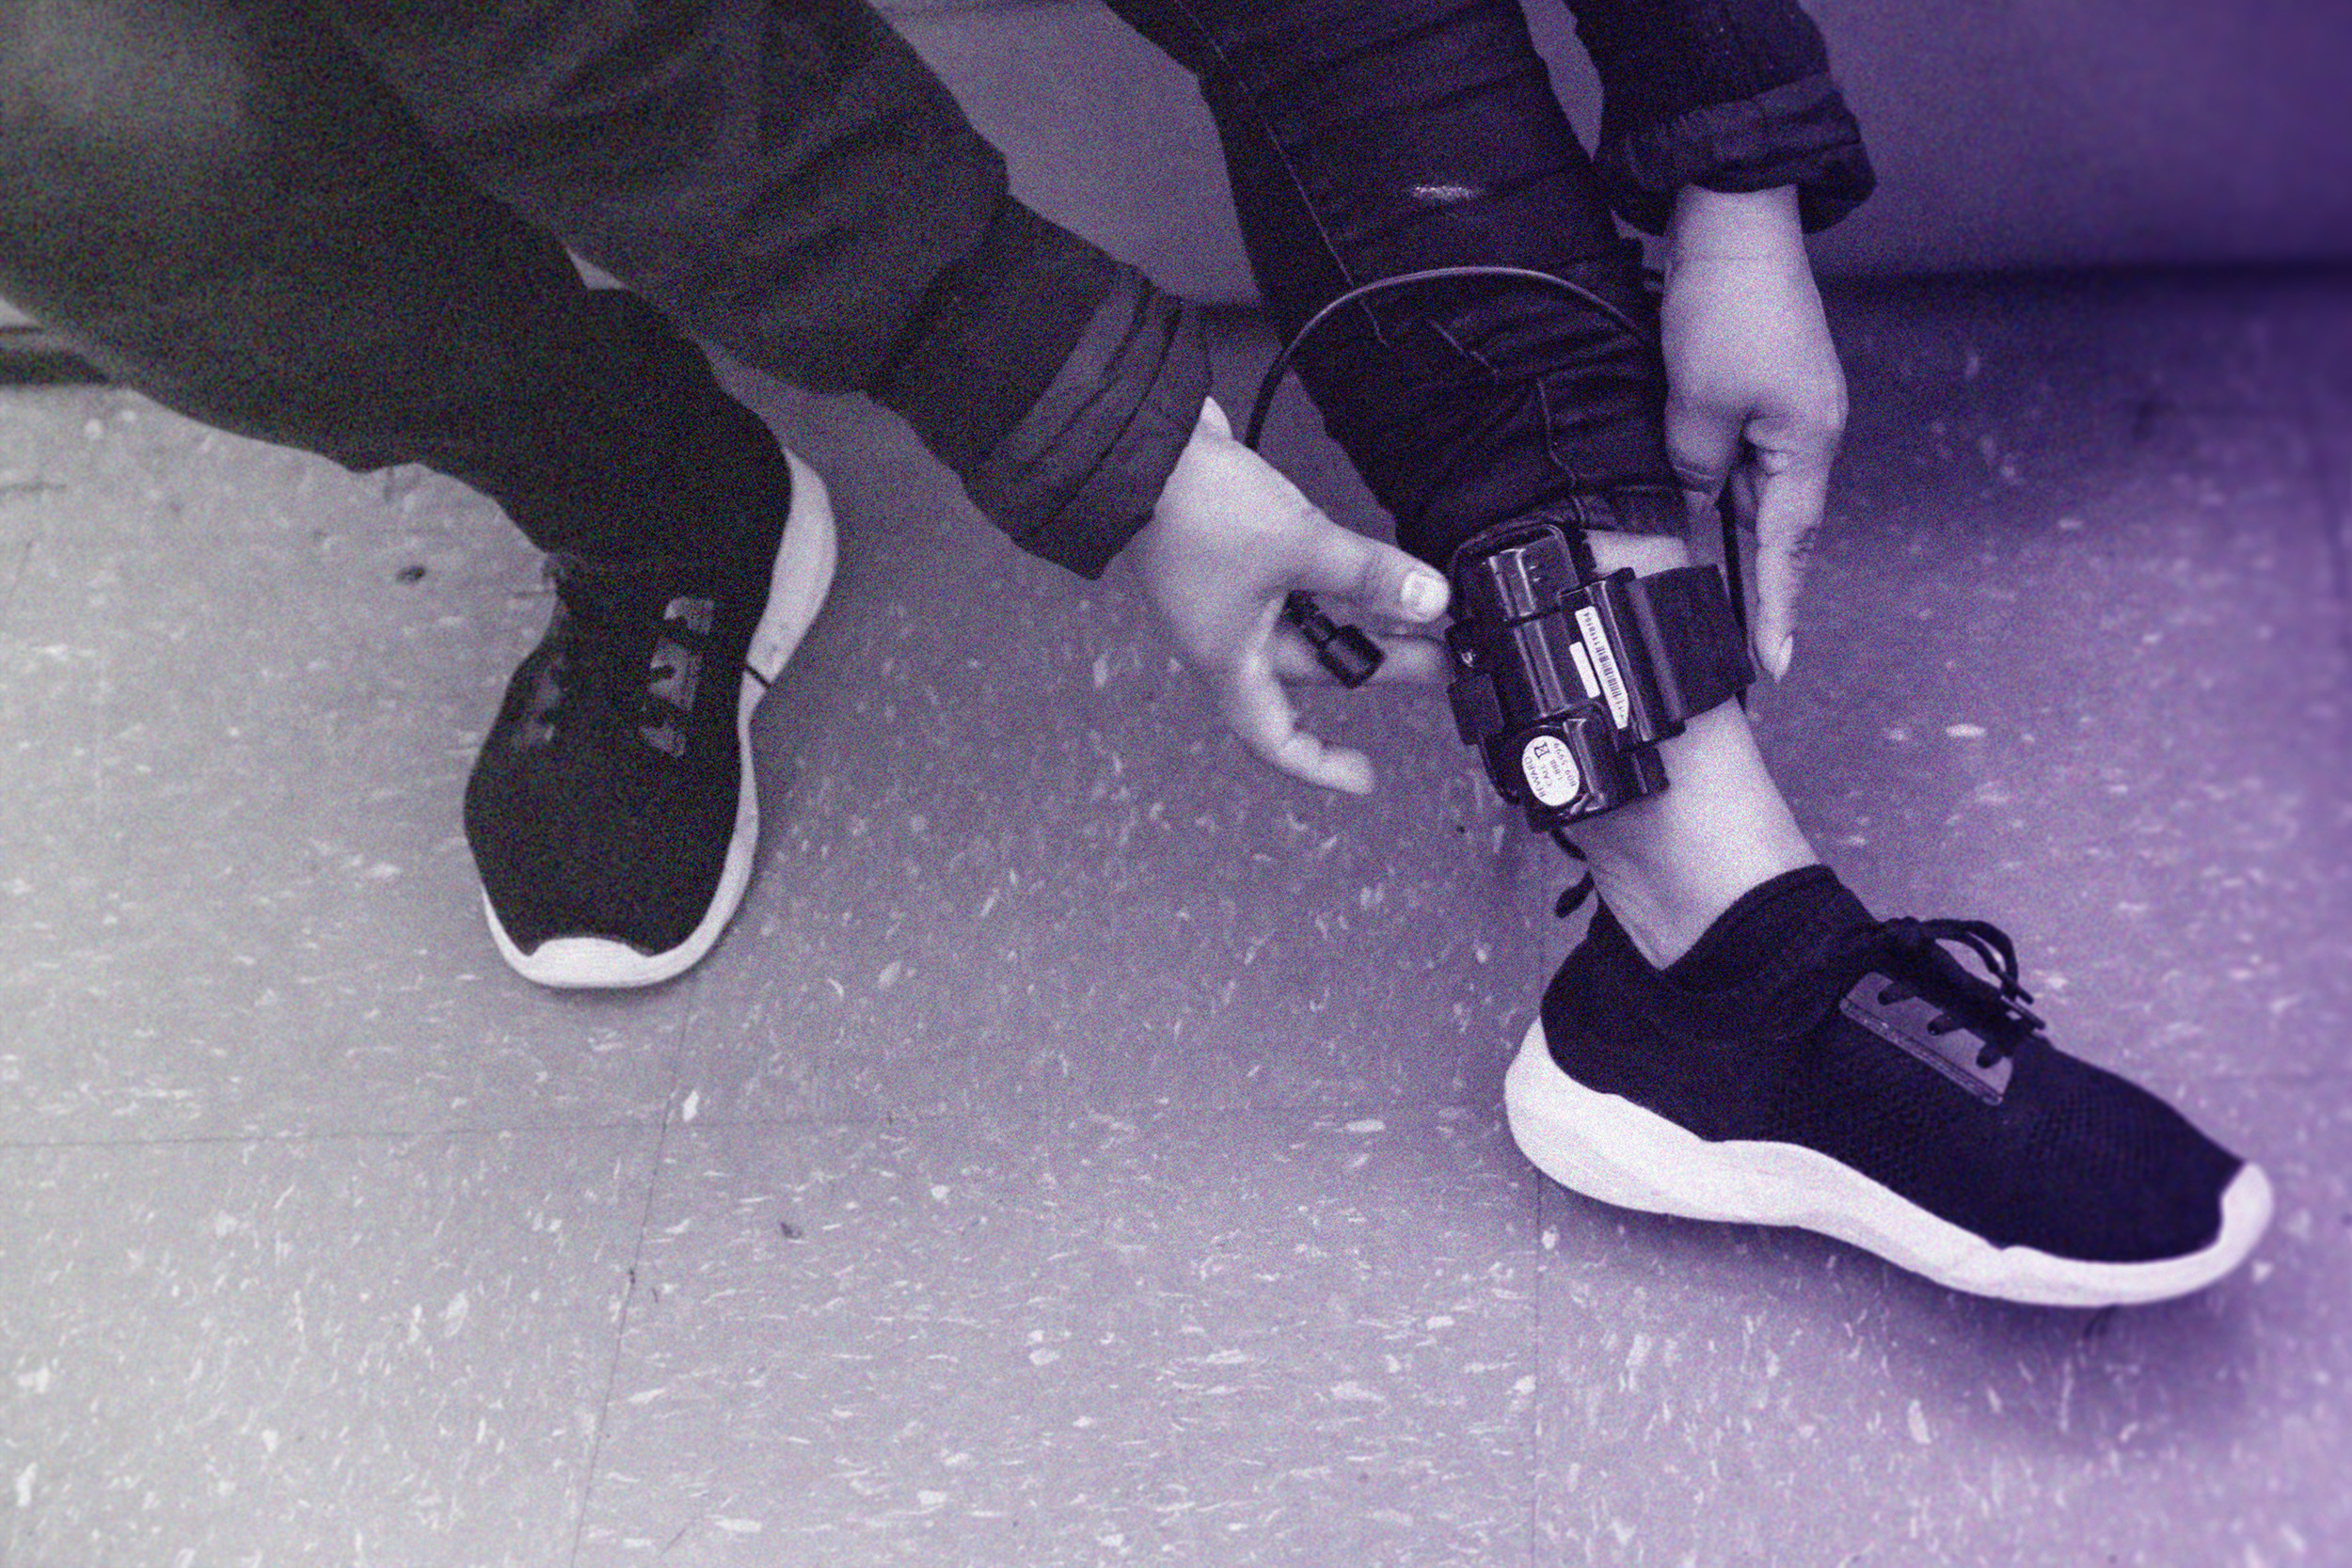 Other than prison, electronic monitoring is 'the most restrictive form' of control, research finds